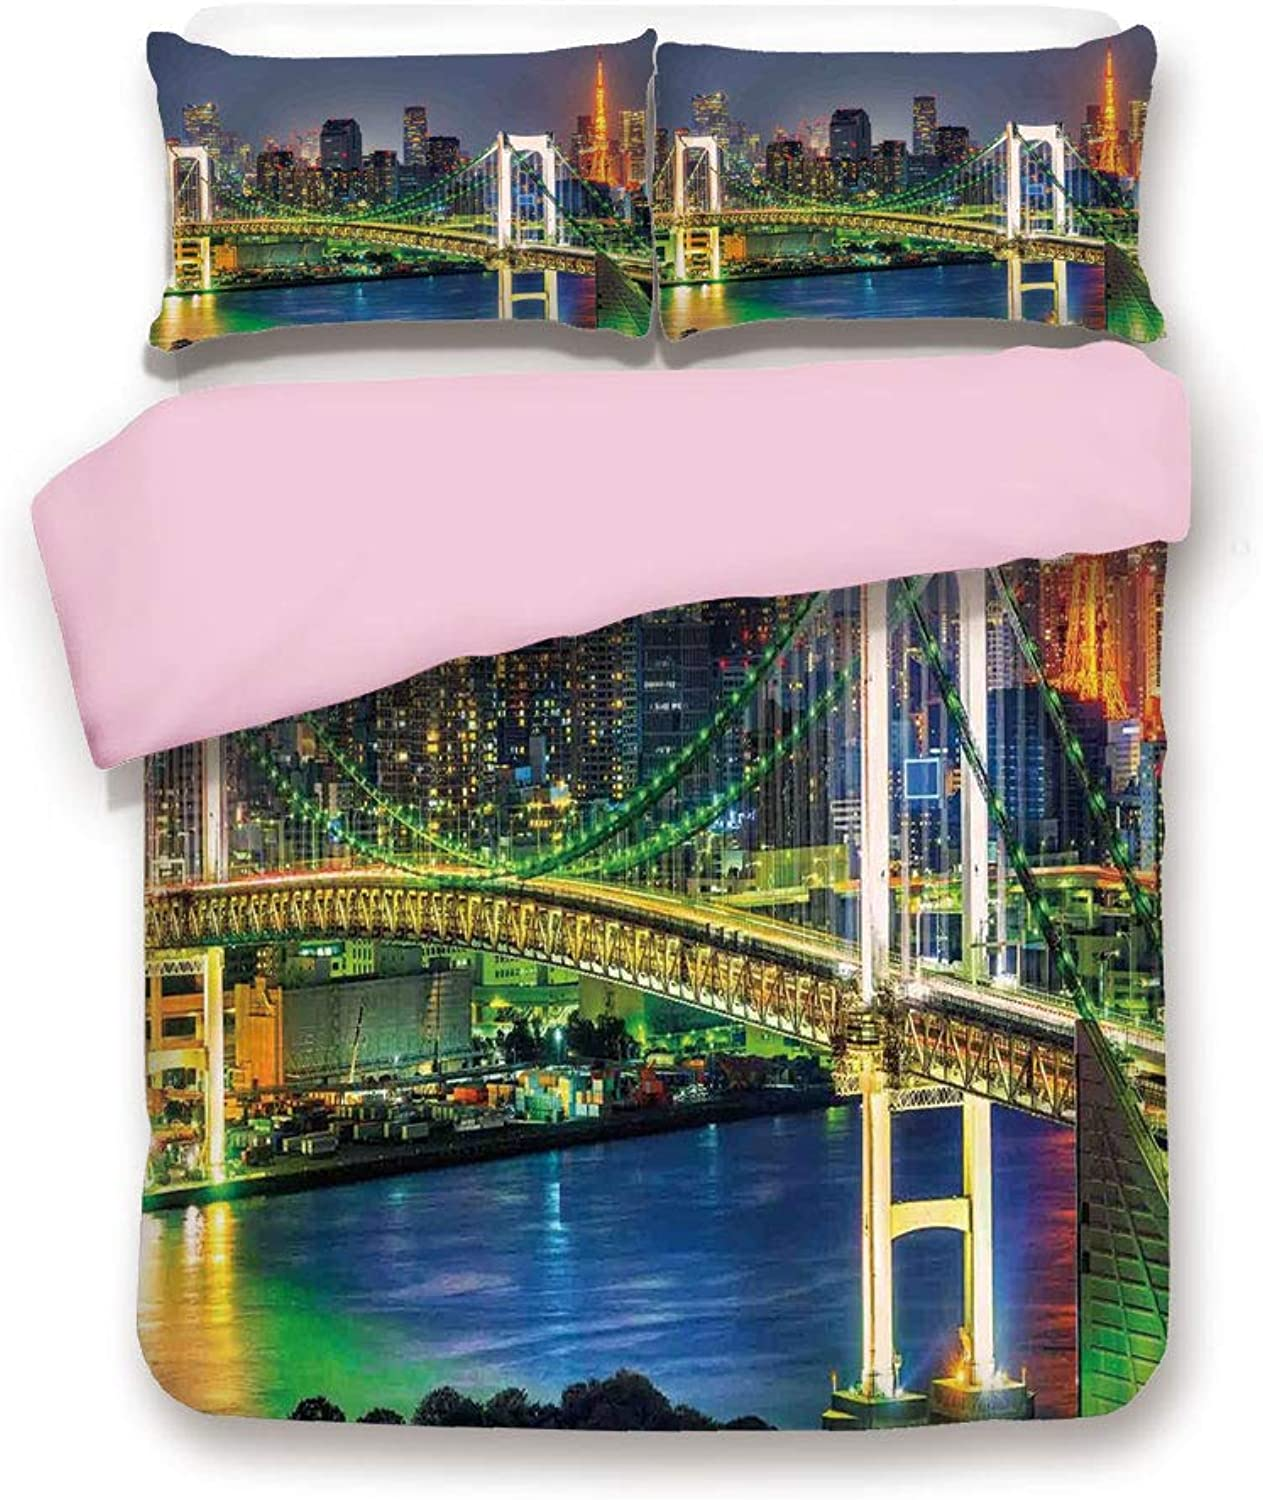 Pink Duvet Cover Set,Queen Size,Tokyo Skyline with Tokyo Tower and Rainbow Bridge Tokyo Japan Night Scenery View,Decorative 3 Piece Bedding Set with 2 Pillow Sham,Best Gift for Girls Women,Green Navy